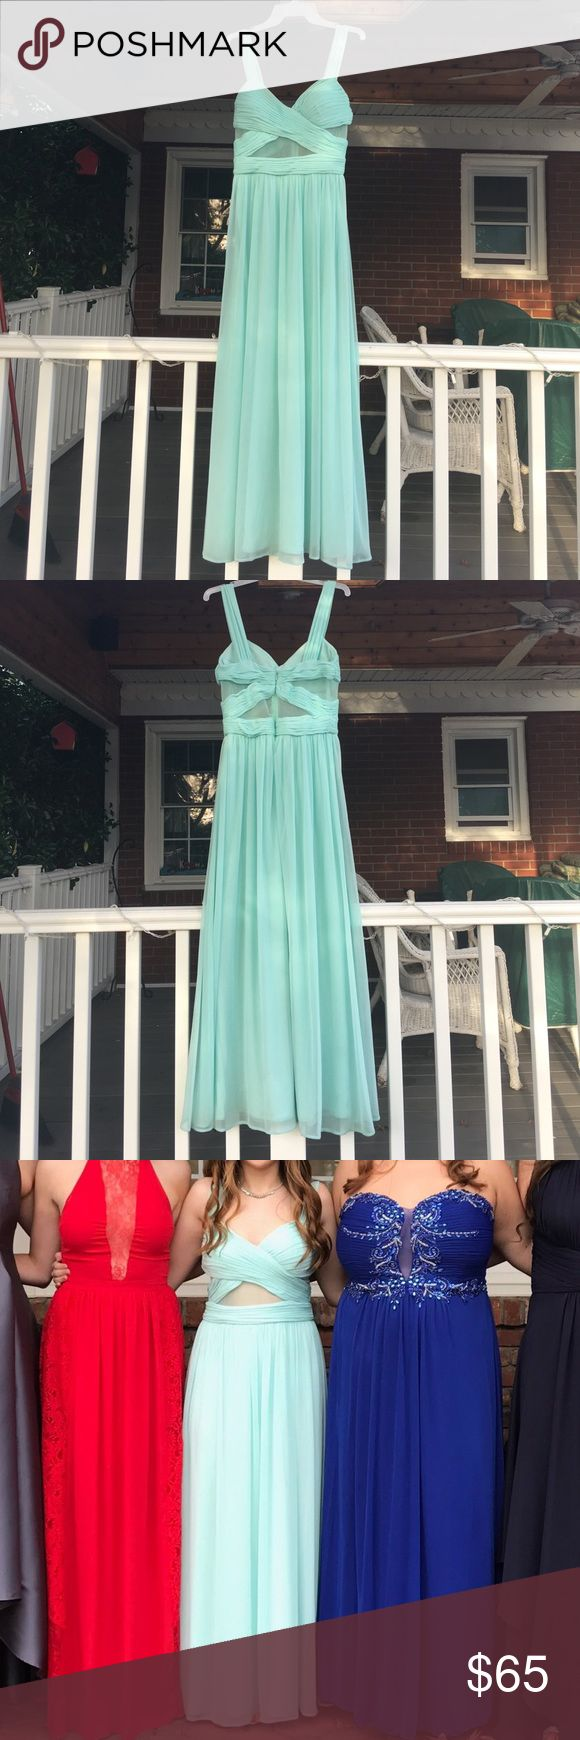 """Prom dress blue! Super cute prom dress only worn once to prom! I'm good condition! Has small stain on bottom from the grass. It other than that it's great! Such a cute color and got so many compliments on it!💗 the dress says size 8 but it's really is a size 2 because the place didn't have this dress in my size and I loved it so much I got it tailored to fit my size which is a size 2 in dresses!!! any more questions just let me know! 5'2"""" female and wore 3 inch heels ! prom girl Dresses Prom"""